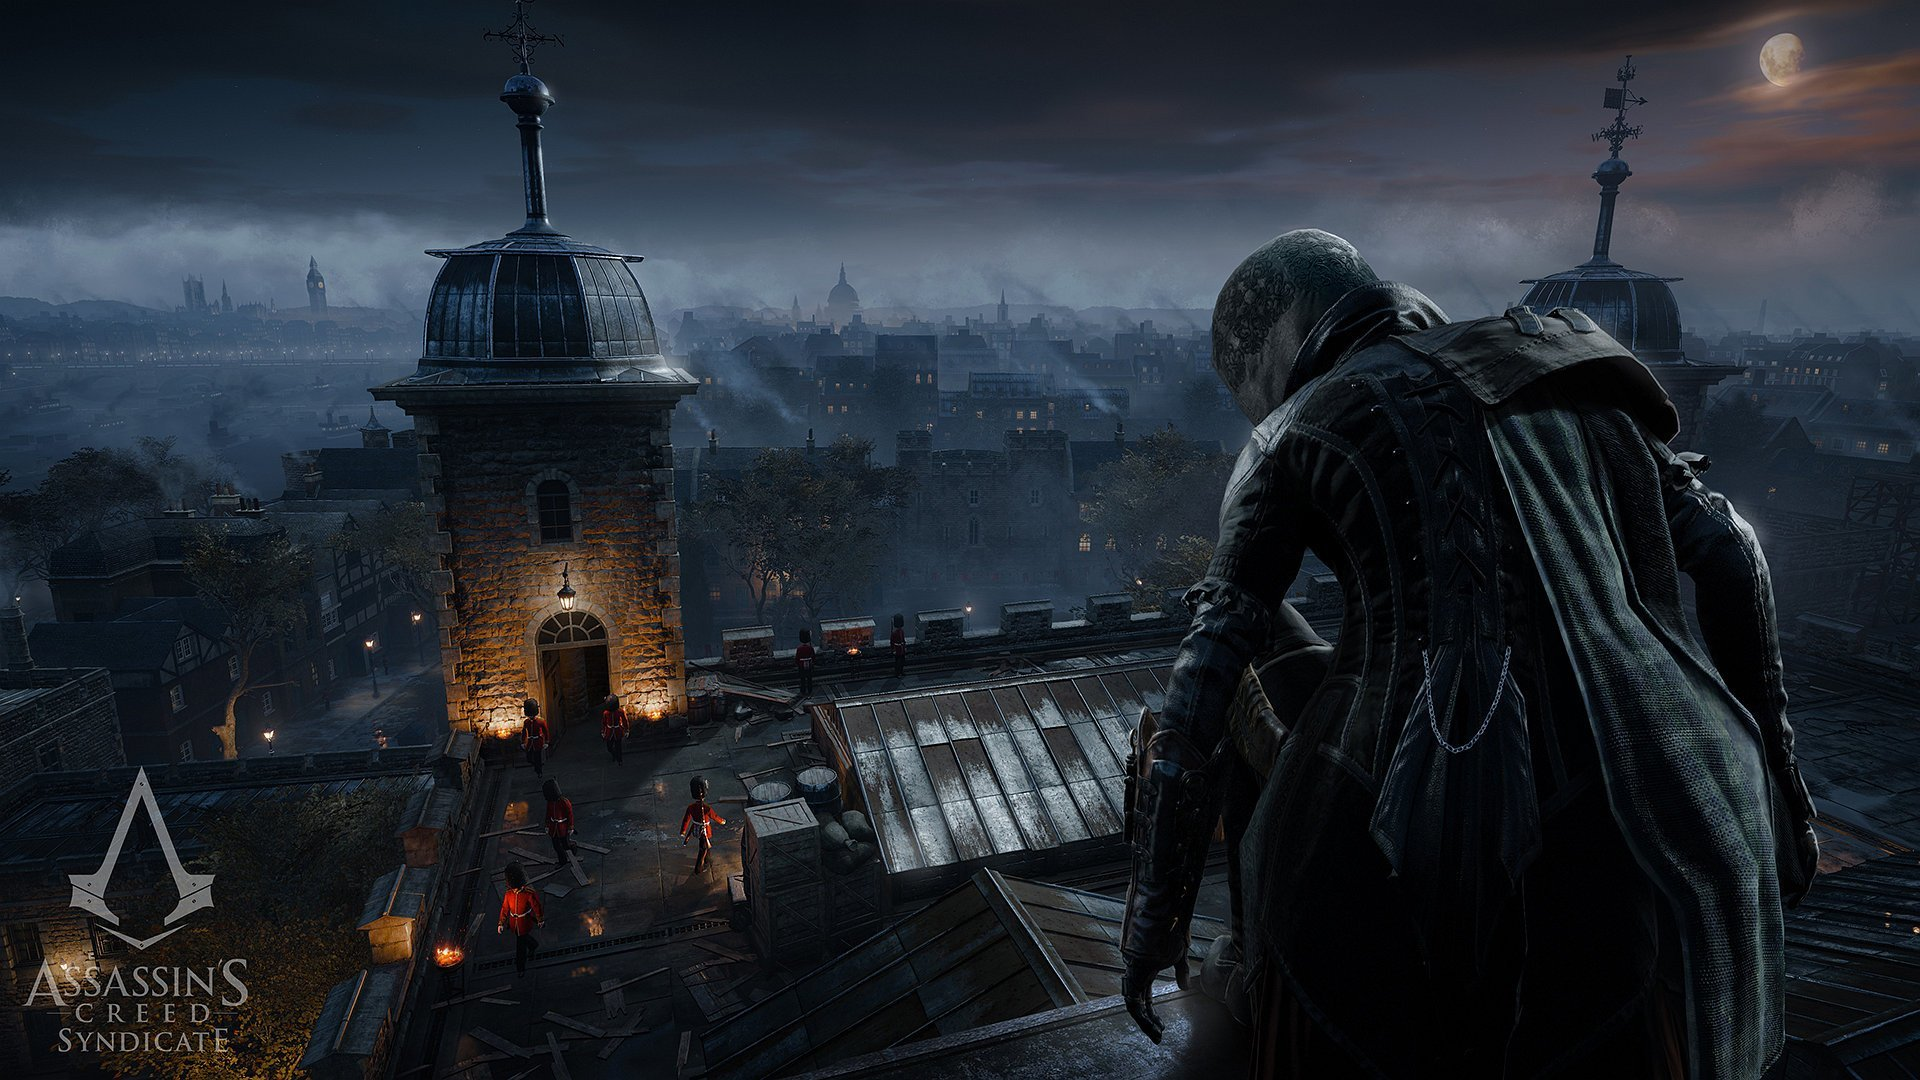 Awesome Assassins Creed Syndicate Free Background ID260305 For Hd 1080p PC